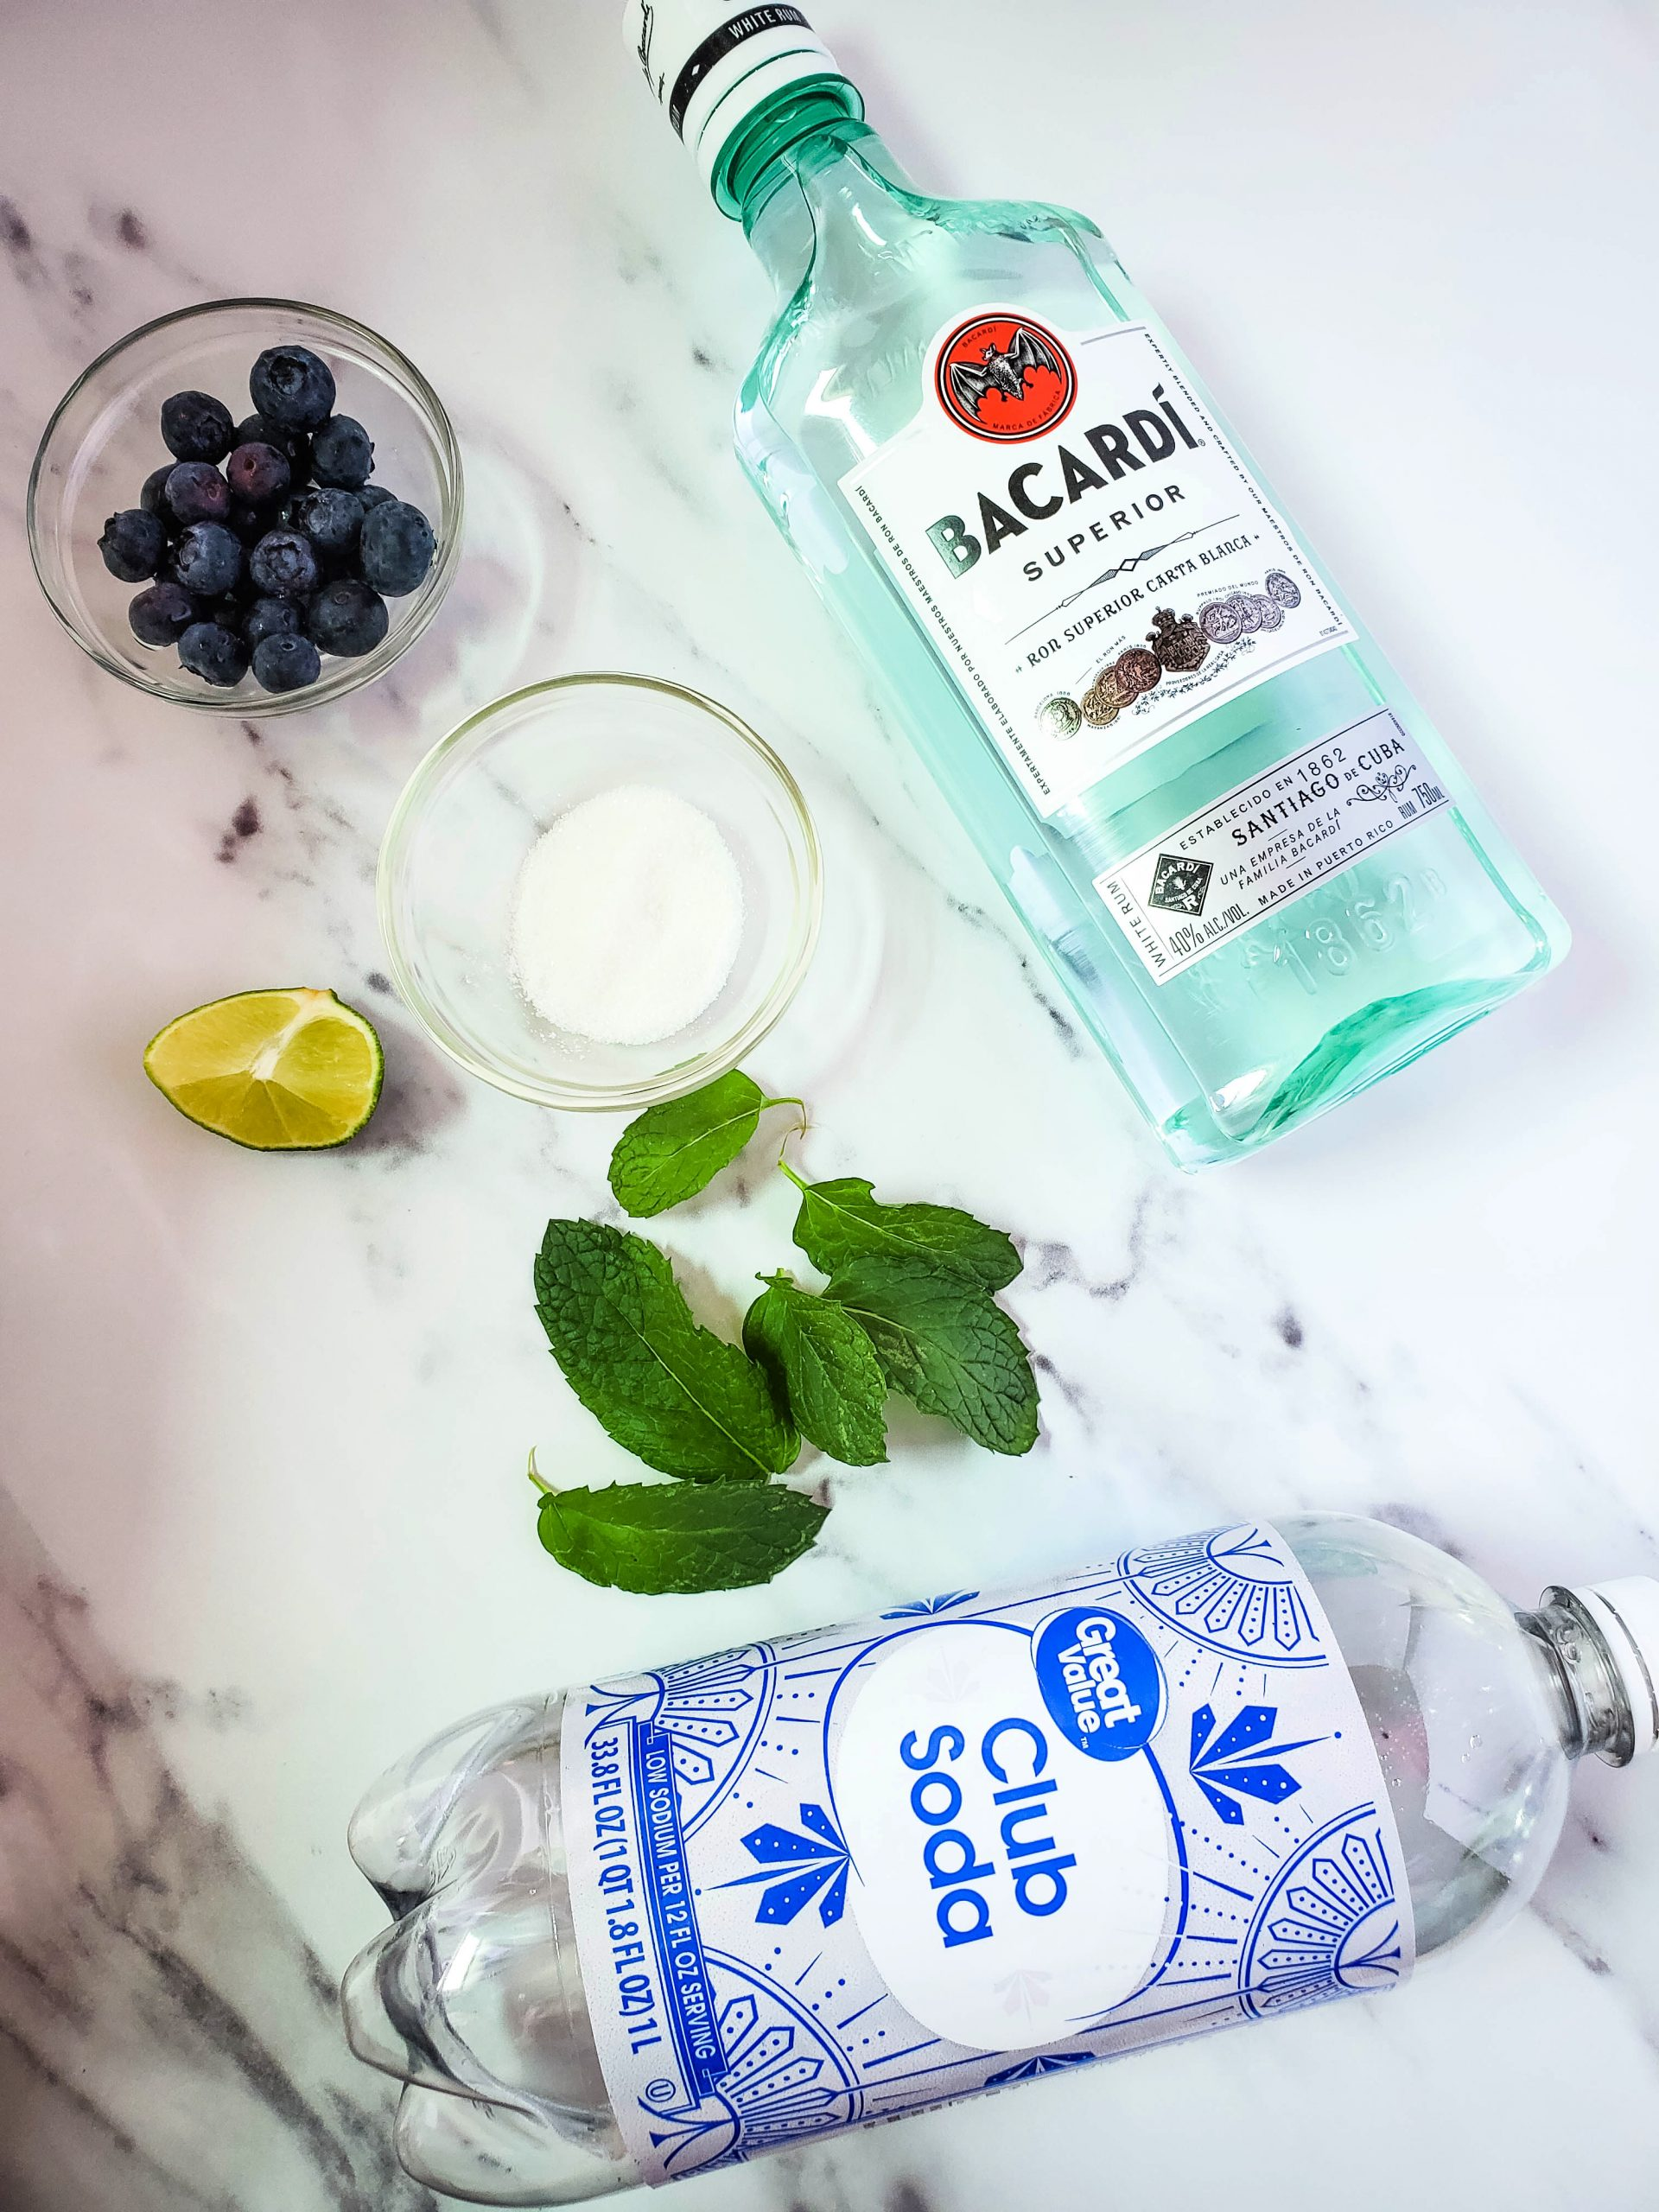 Blueberry Mojito ingredients - rum, club soda, blueberries and mint shown on a cutting board.